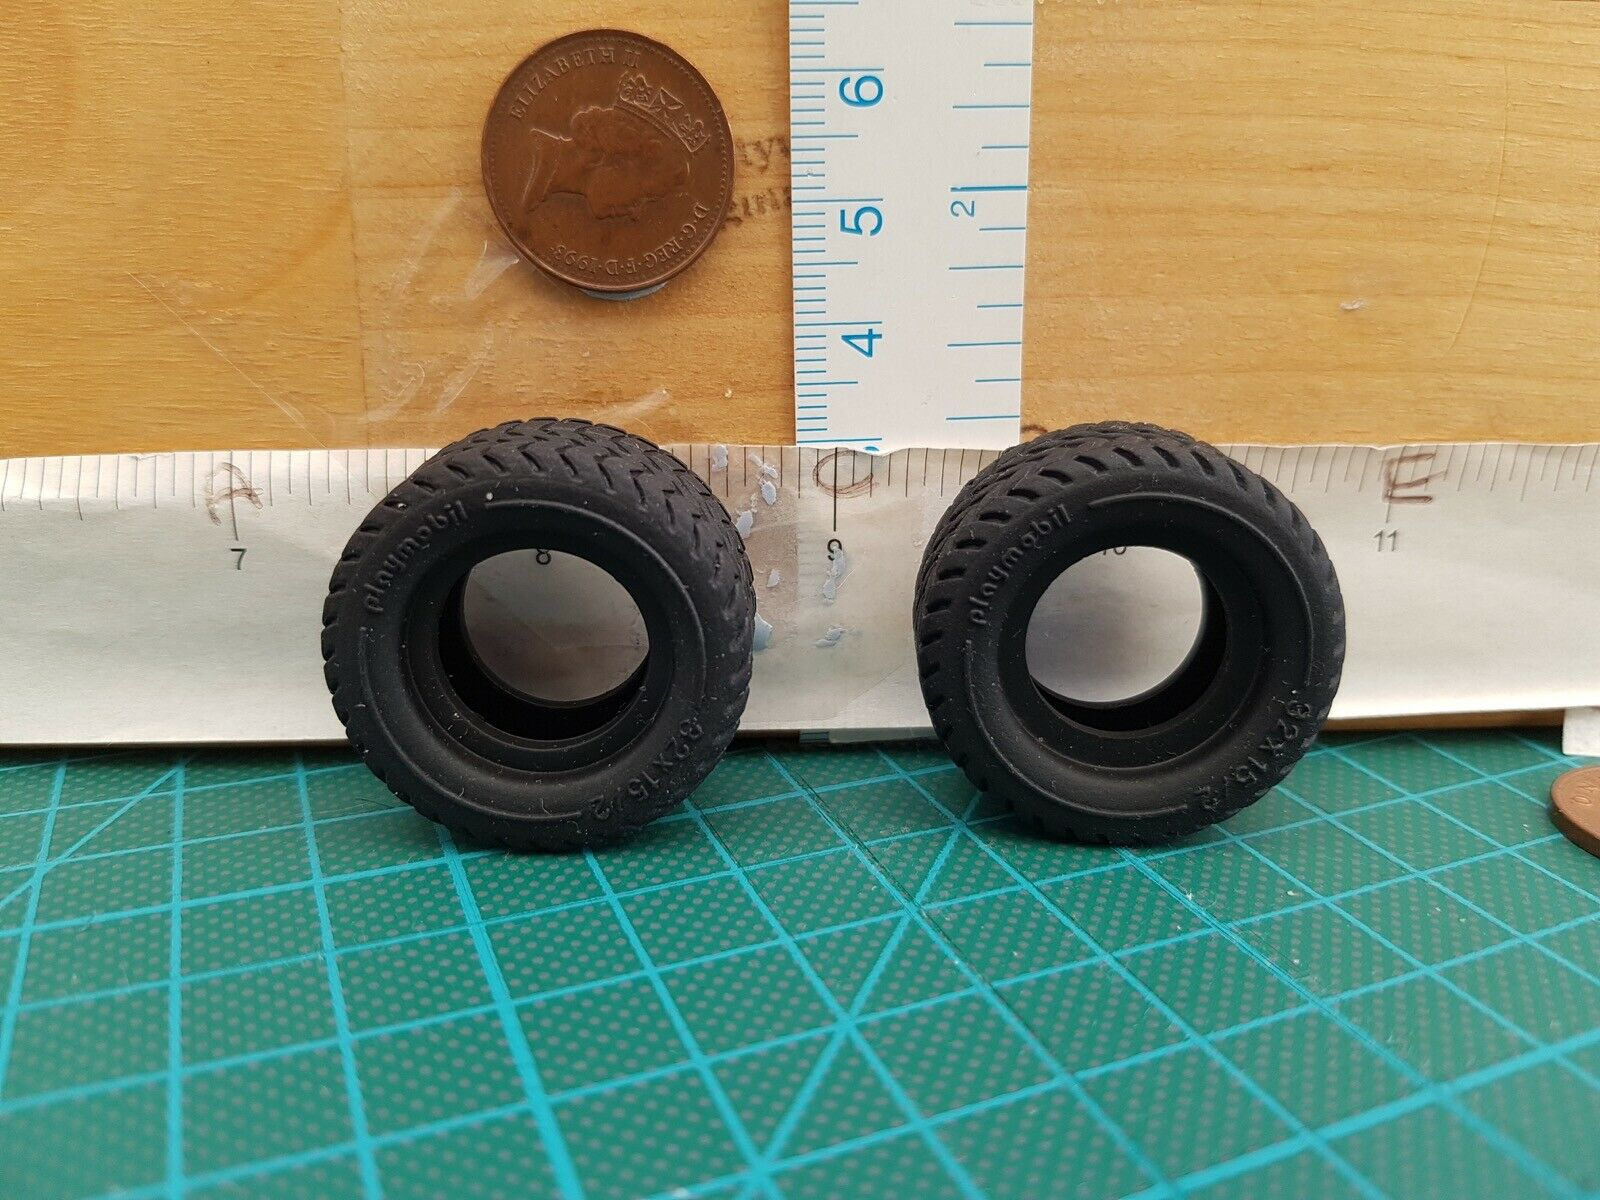 Playmobil New Spares Two Cables for Flatbed Truck 3935 end-gate